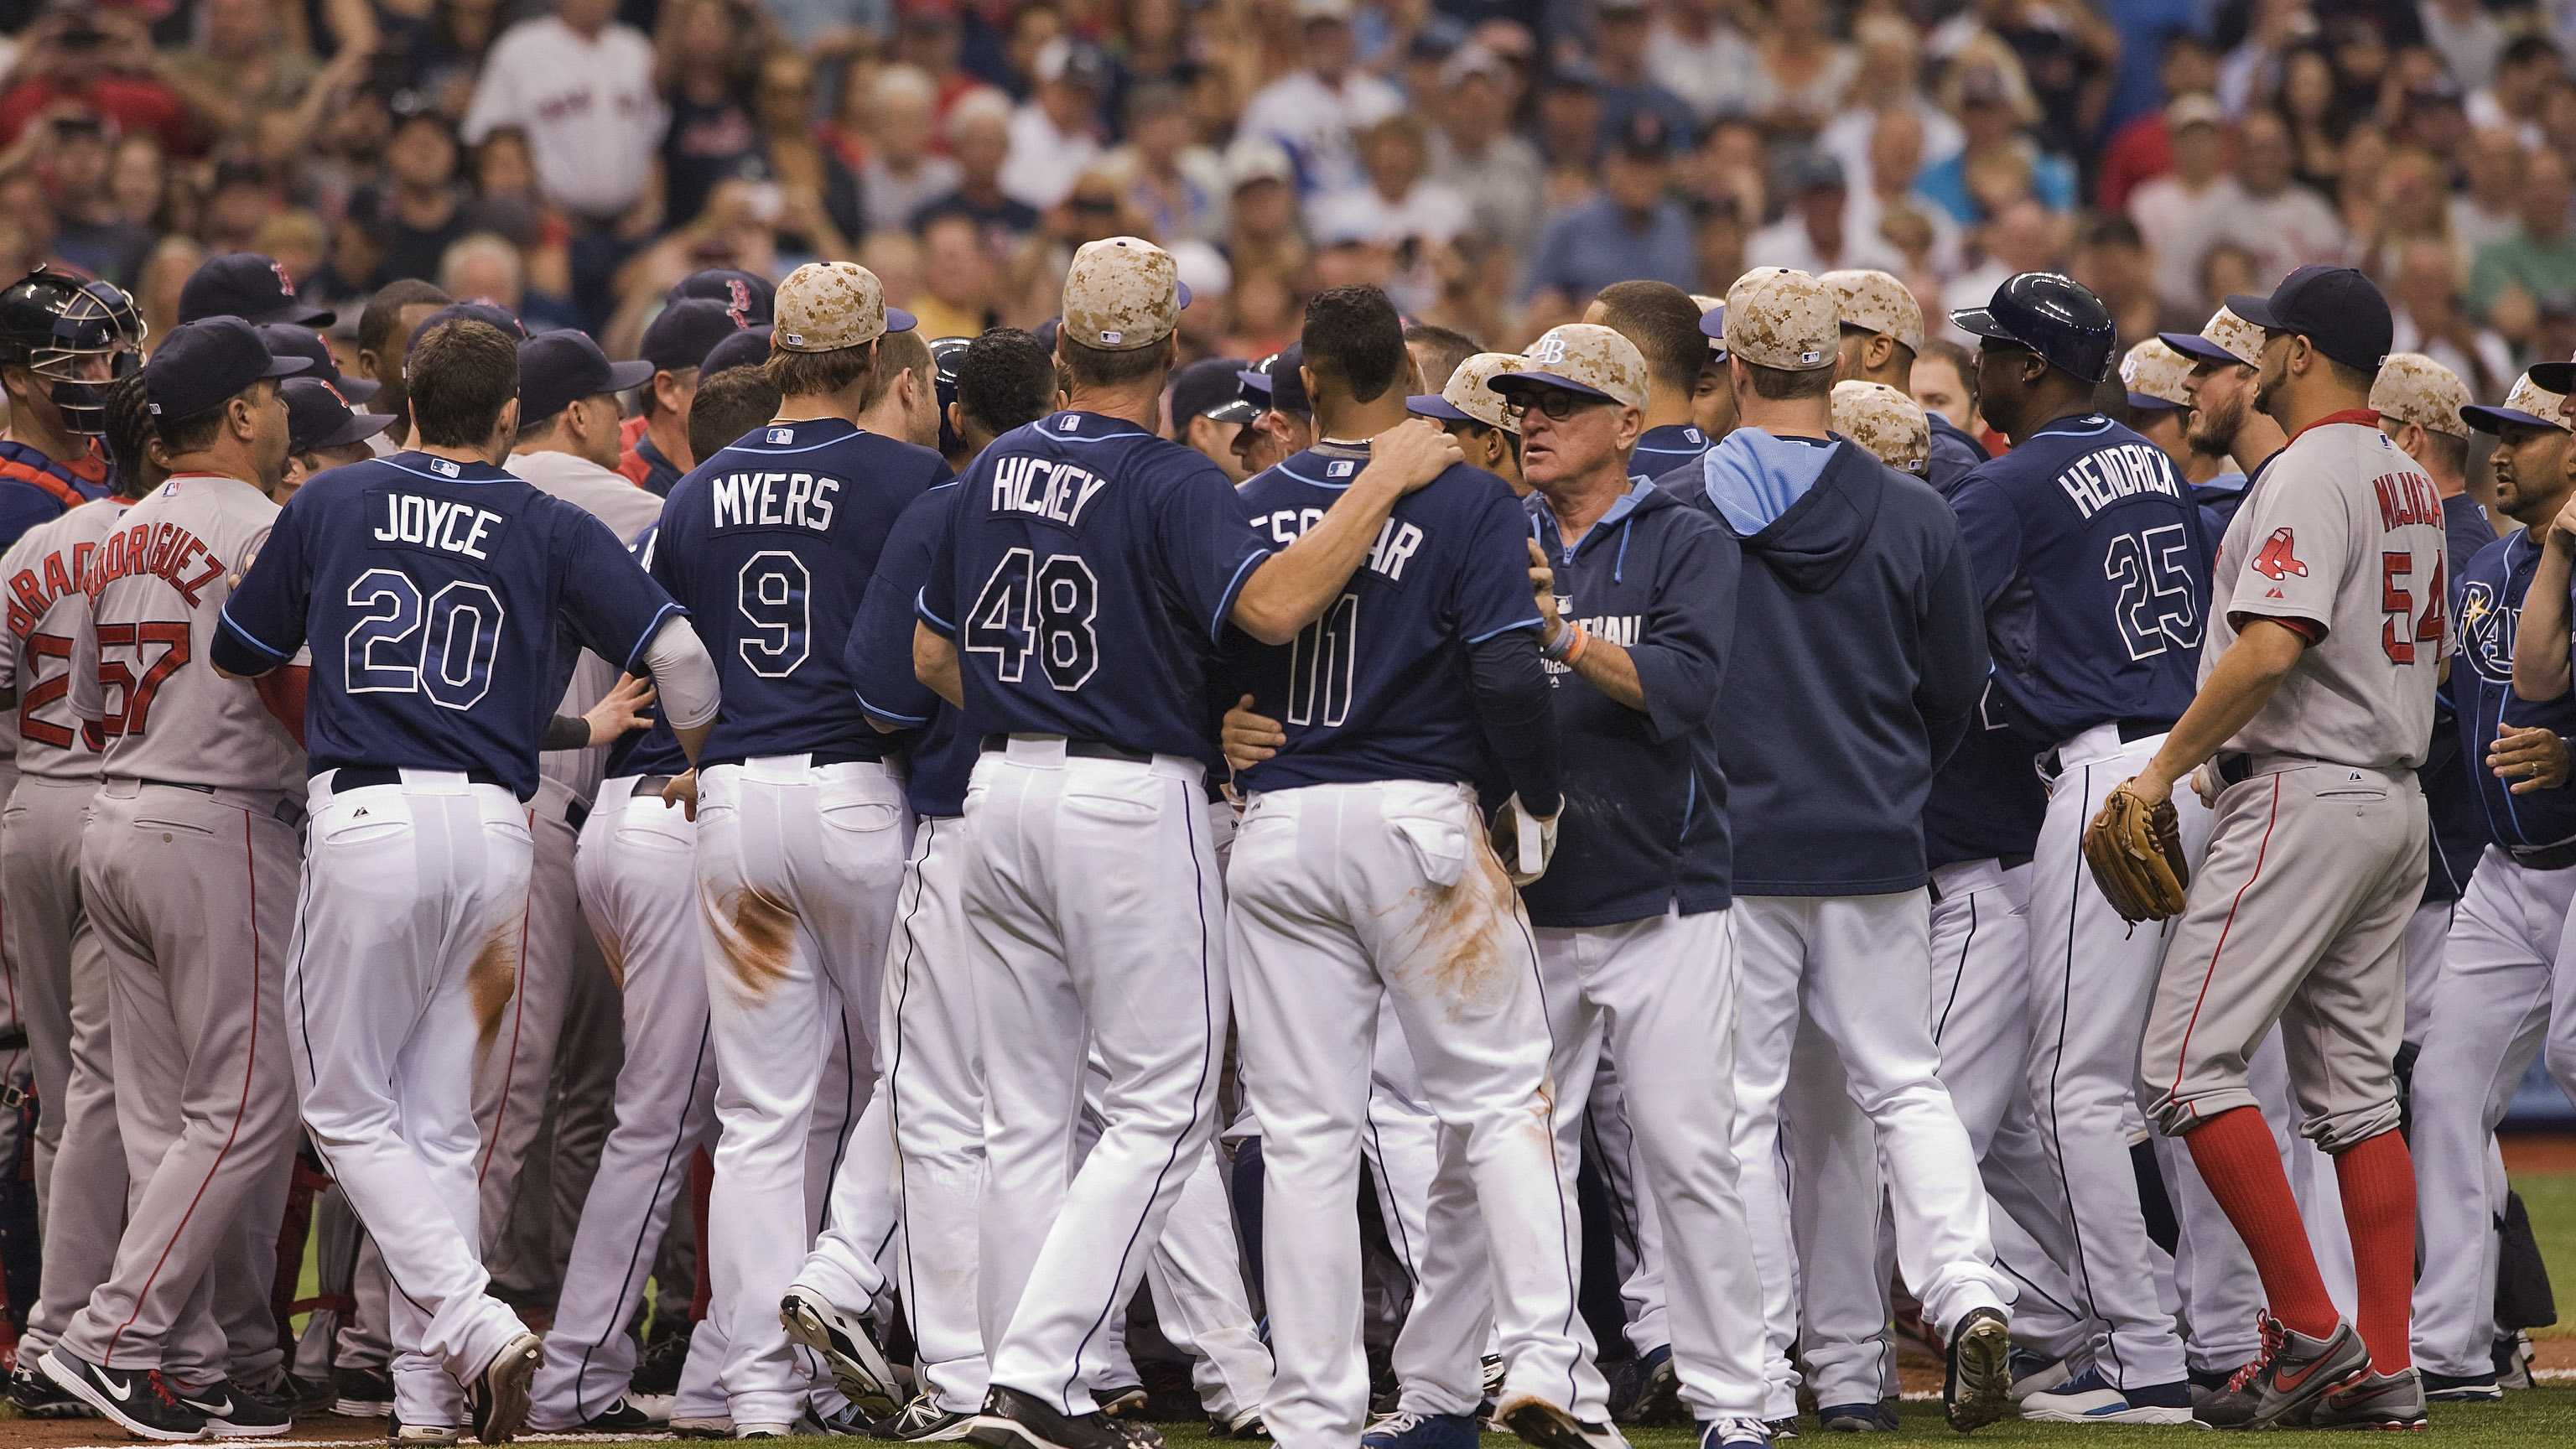 Tampa Bay Rays manager Joe Maddon ,center right, and pitching coach Jim Hickey (48) restrain Yunel Escobar (11) during a benches-clearing brawl during the seventh inning of a baseball game against the Boston Red Sox Sunday, May 25, 2014 in St. Petersburg, Fla. The Rays beat the Red Sox 8-5. (AP Photo/Steve Nesius)